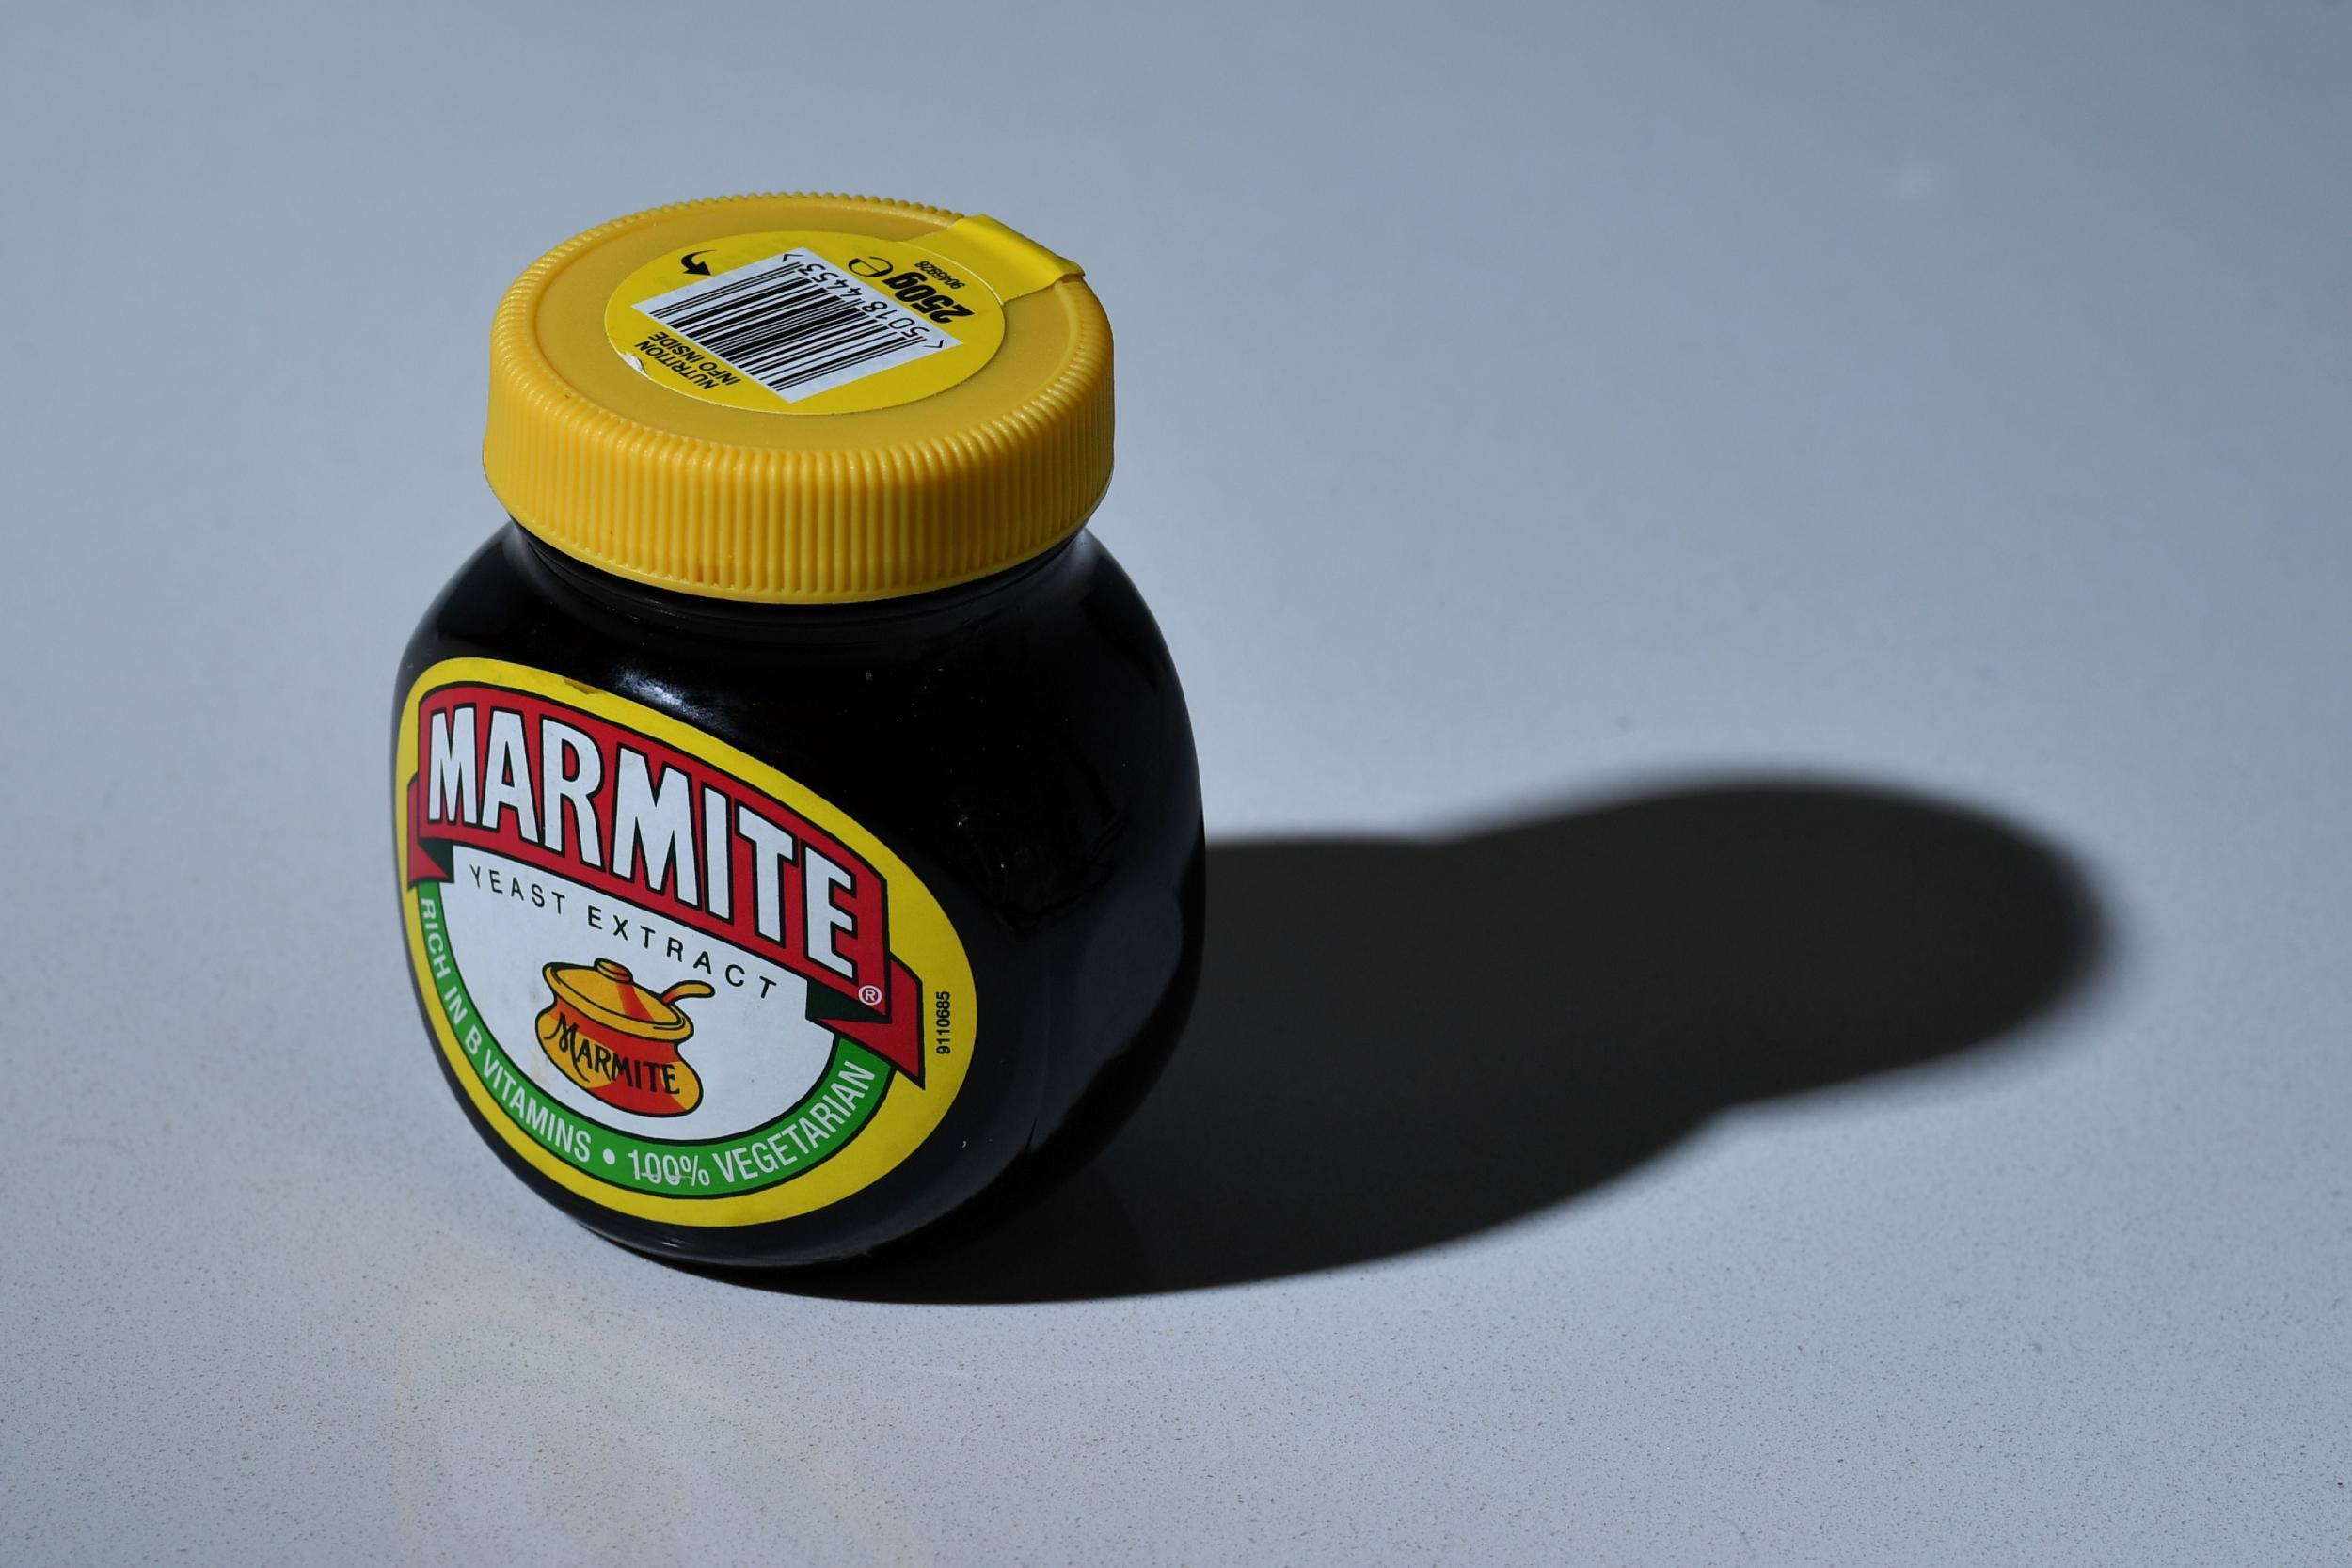 Ex-City brokers cash in on Brexit with shop selling Marmite and baked beans to UK bankers in Luxembourg